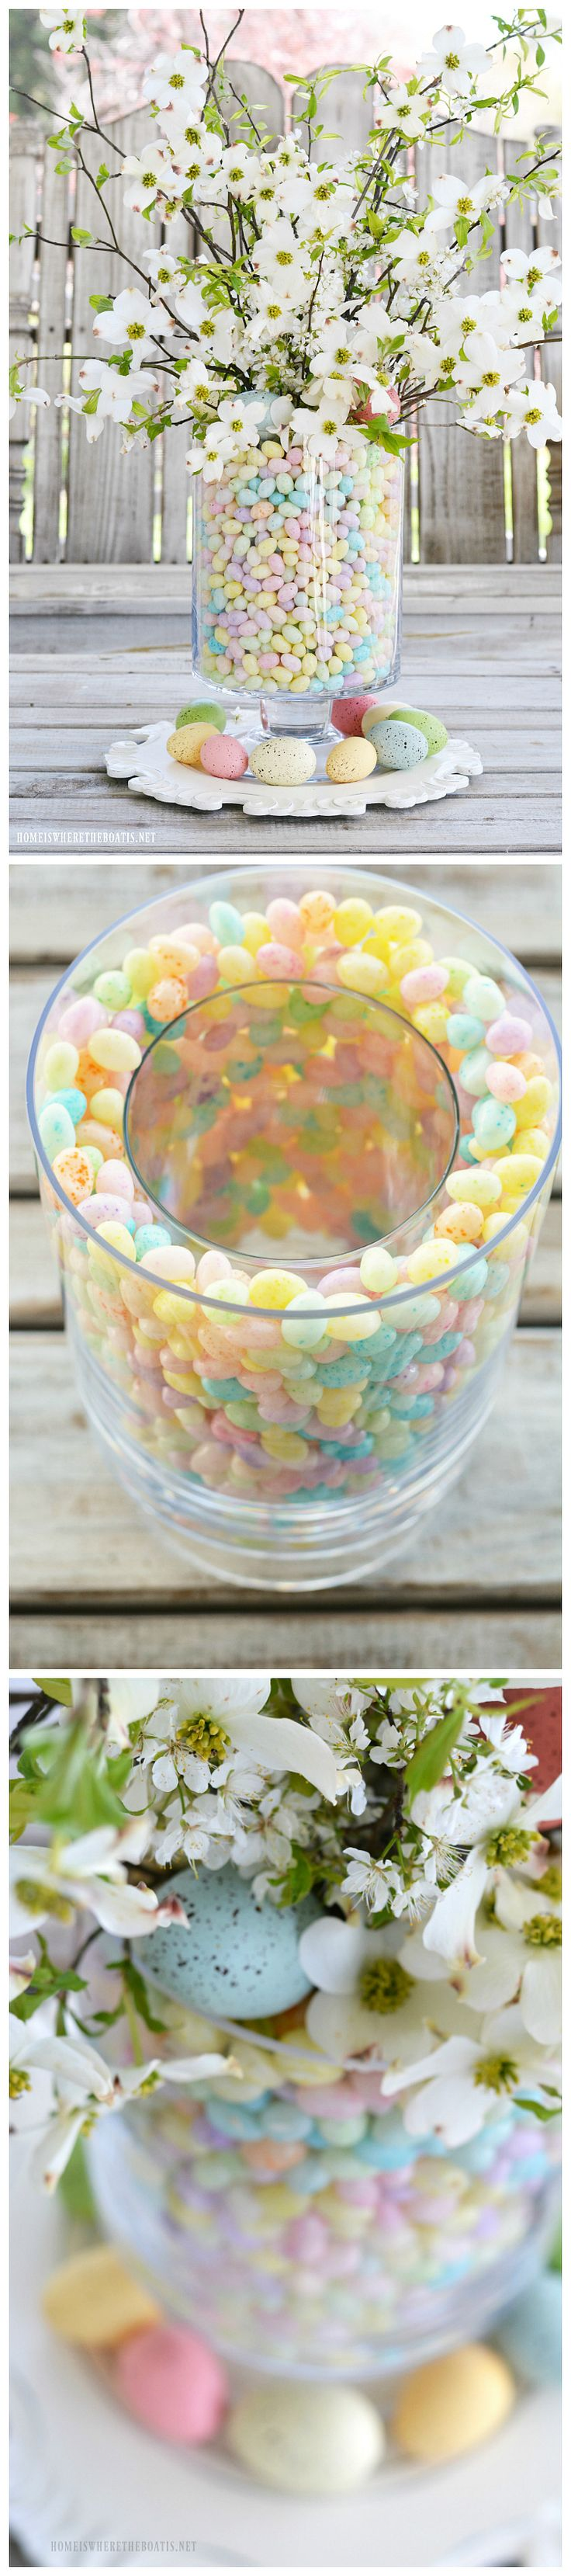 Easy Easter table centerpiece of jelly beans, dogwood and plum tree blossoms | homeiswheretheboatis.net #Easter #centerpiece #spring